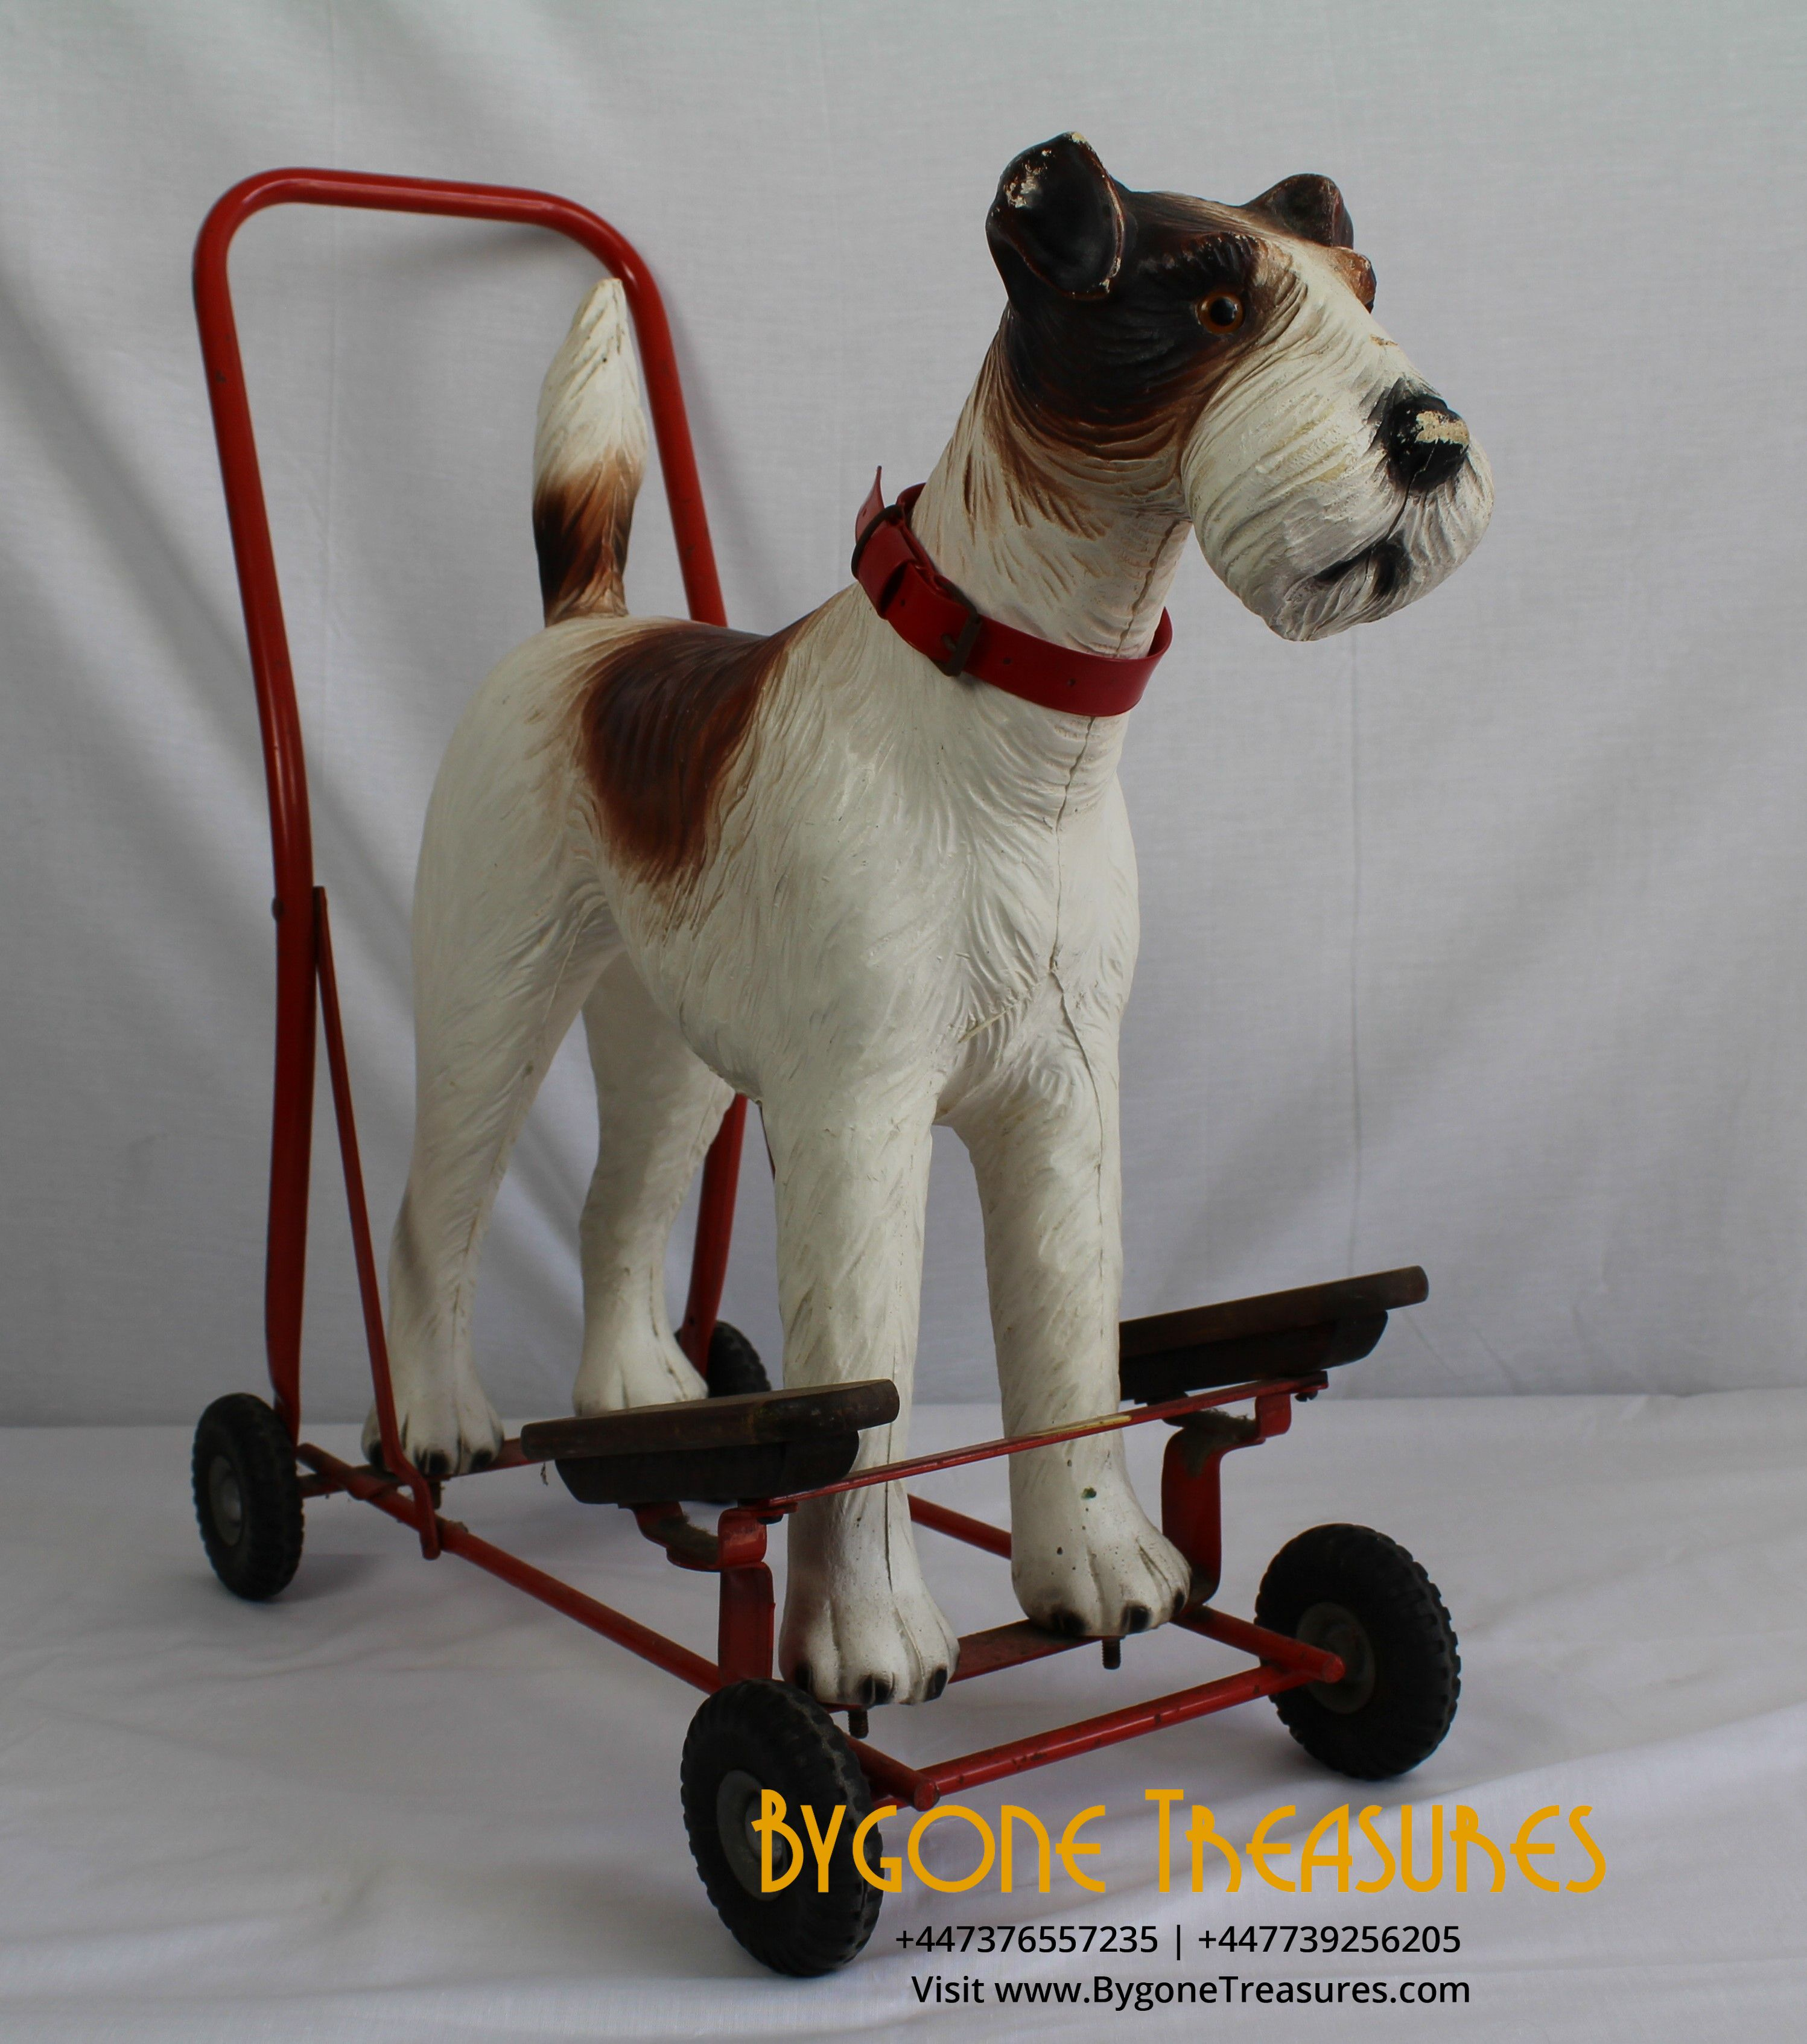 TRIANG 1950s FOX TERRIER PUSH ALONG AND RIDE ON CHILDRENS TOY – AMAZING CONDITION WITH ORIGINAL COLLAR (3)